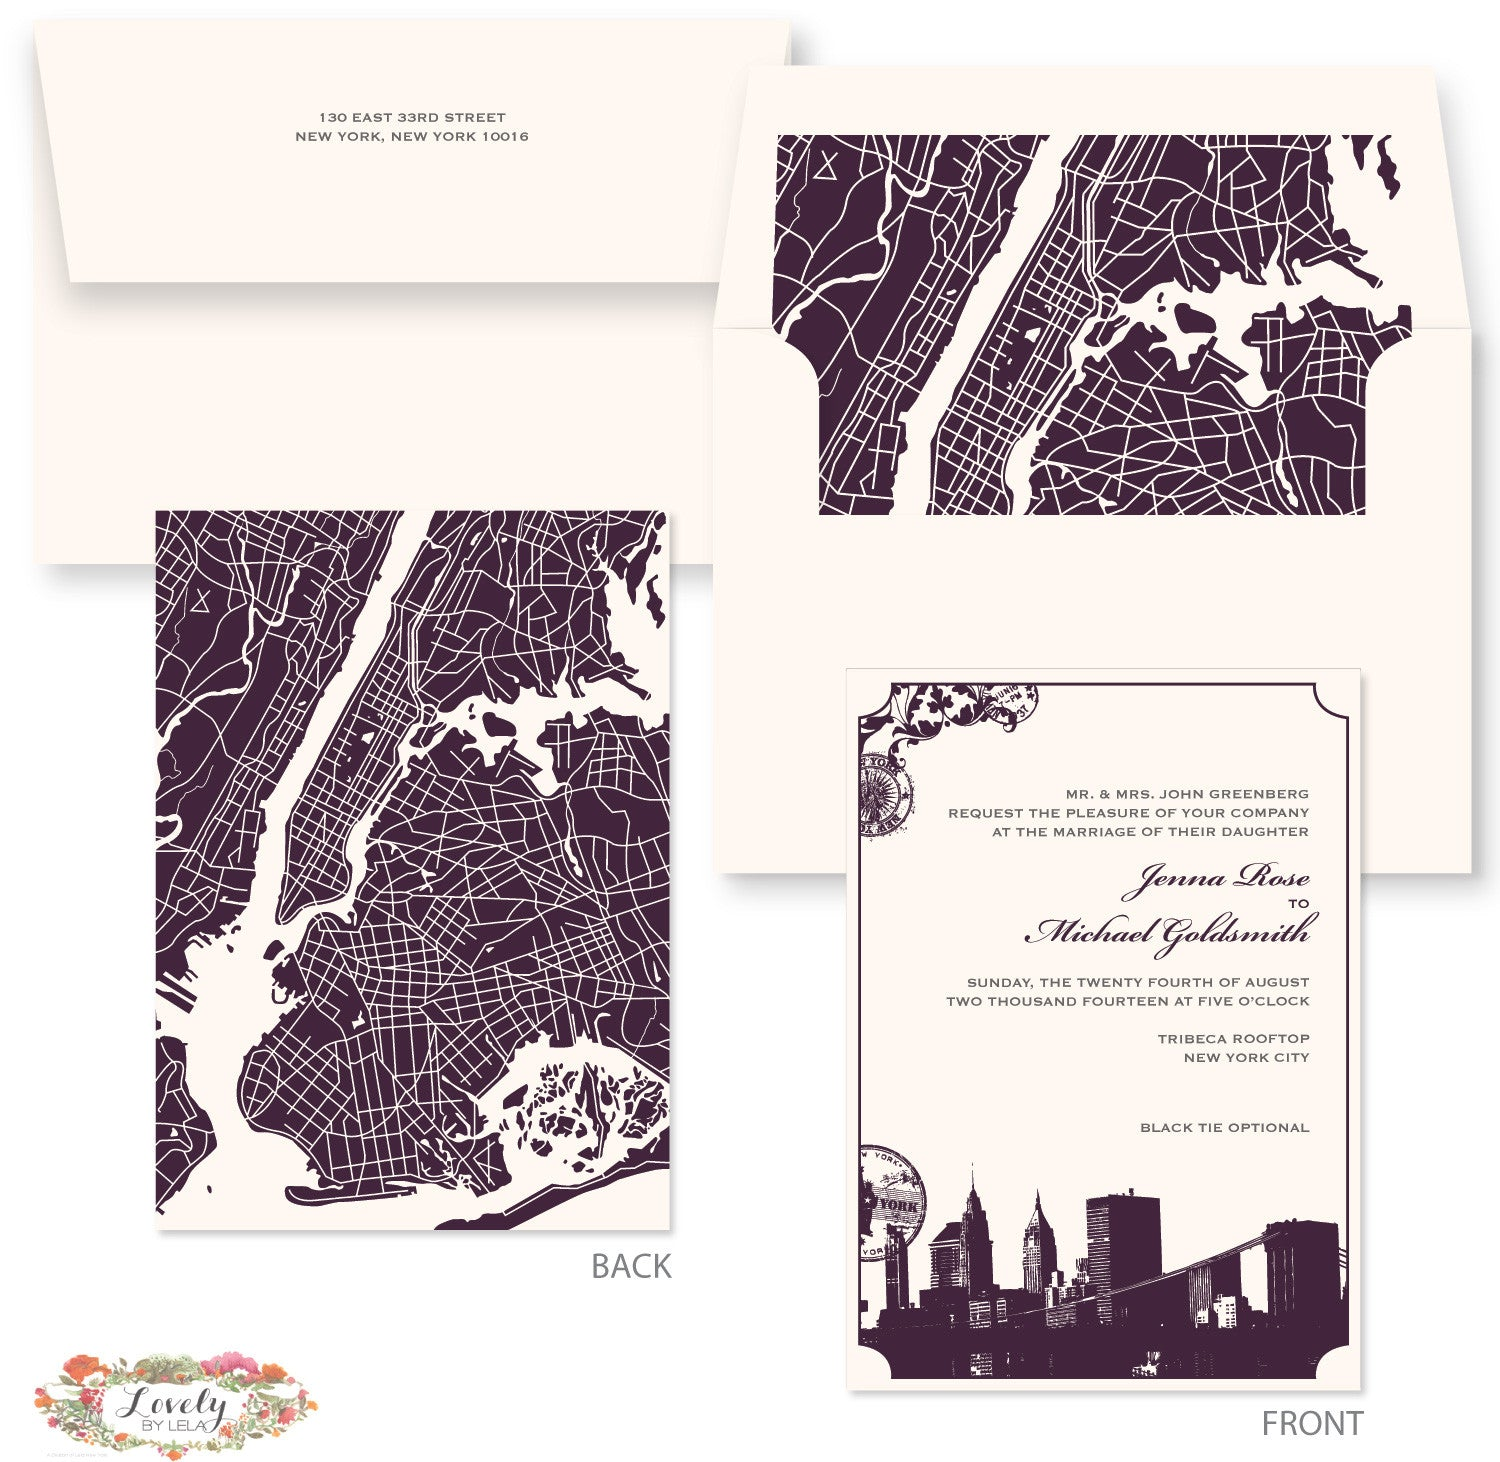 NYC Map Wedding Invitations | LovelybyLela